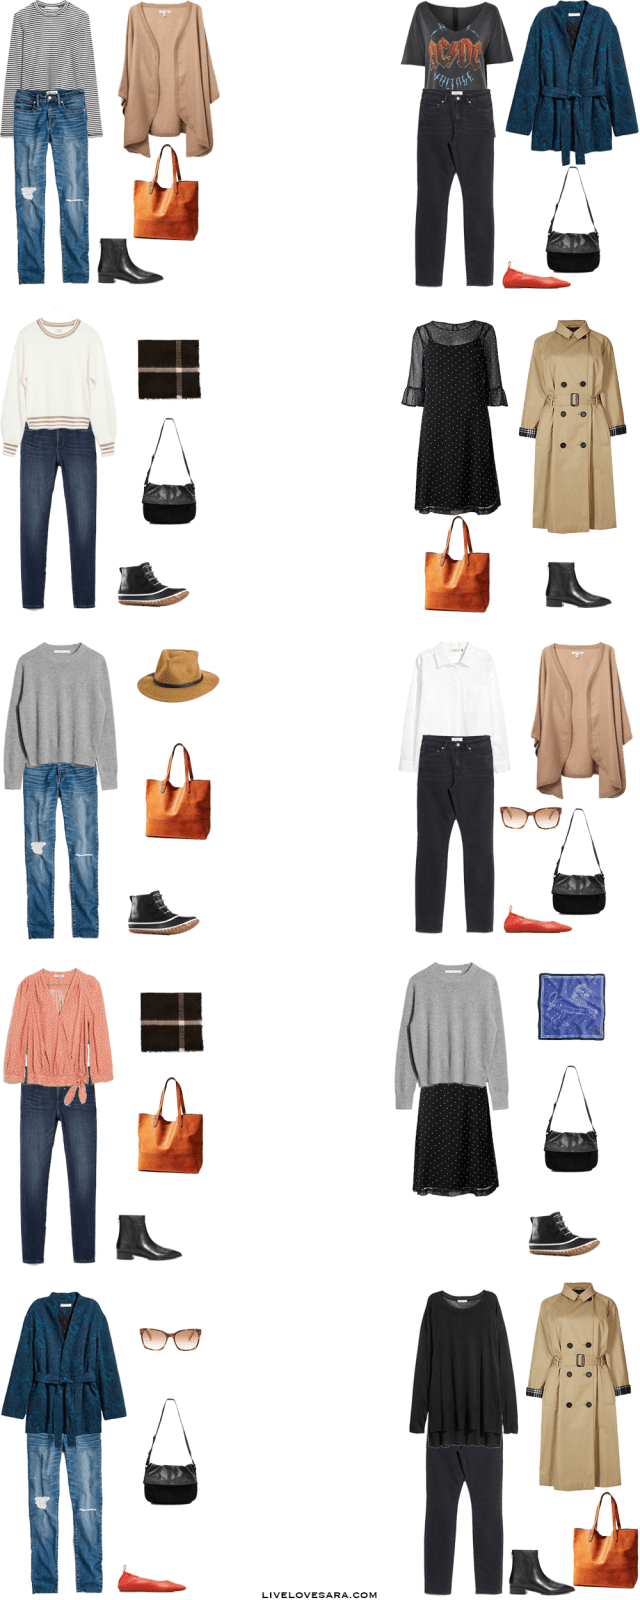 What to Pack for 14 Days in Cardiff, Wales Packing Light List Outfit Options 1-10